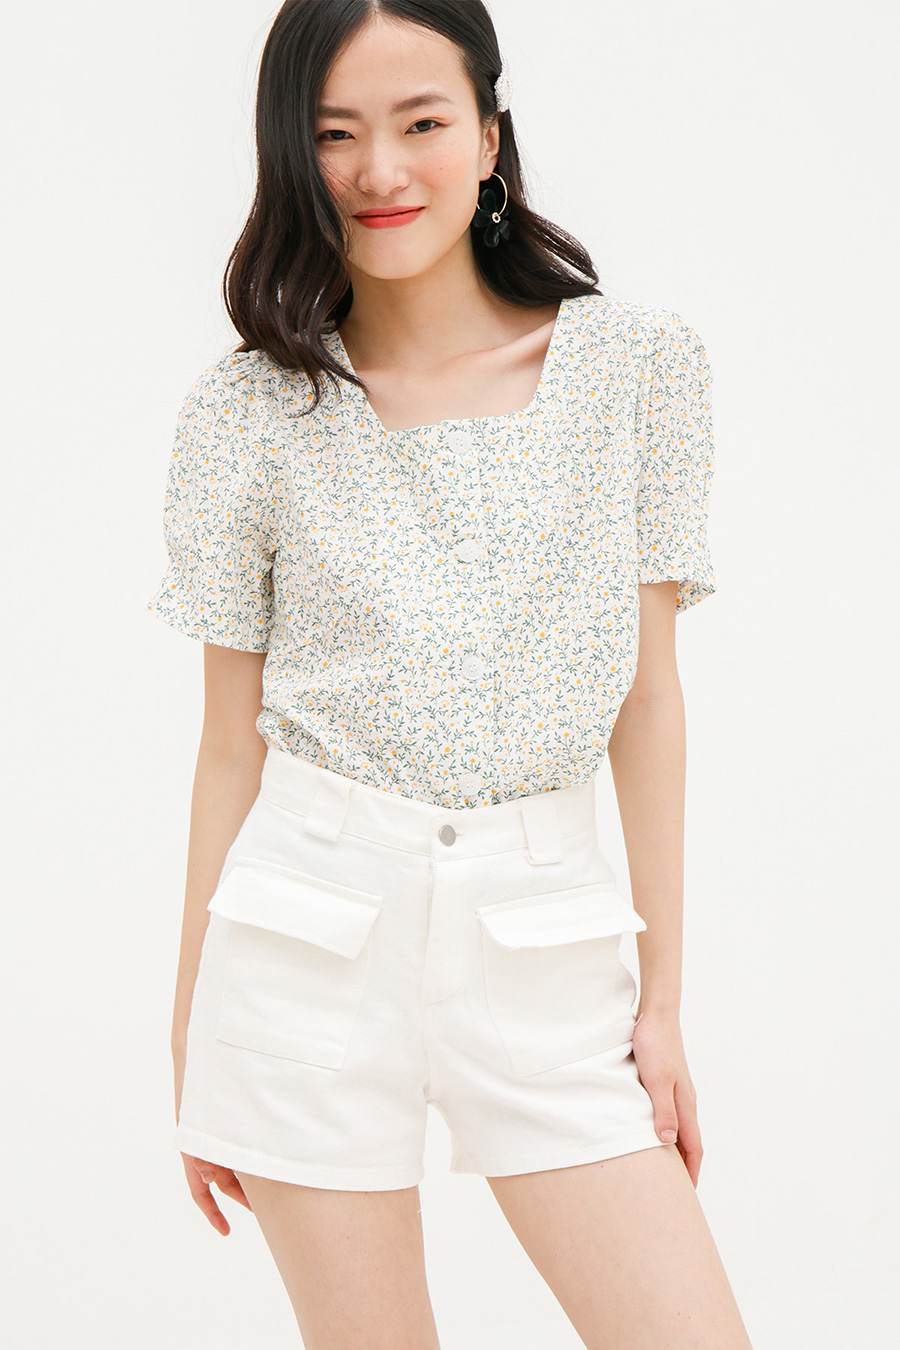 *RESTOCKED* RENEE TOP - CAMELLIA